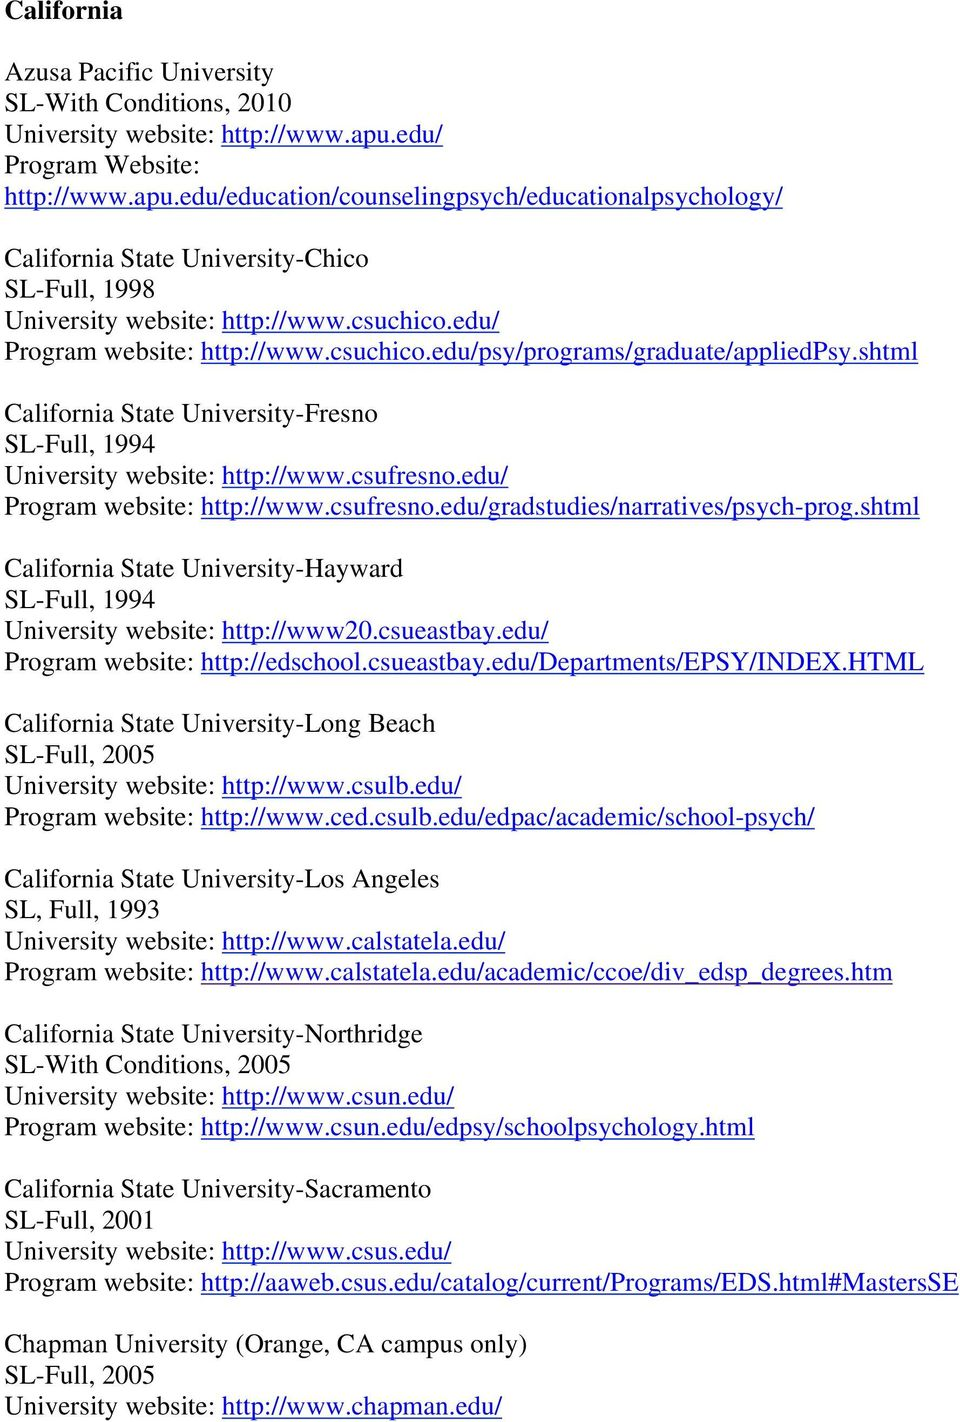 csuchico.edu/psy/programs/graduate/appliedpsy.shtml California State University-Fresno University website: http://www.csufresno.edu/ http://www.csufresno.edu/gradstudies/narratives/psych-prog.